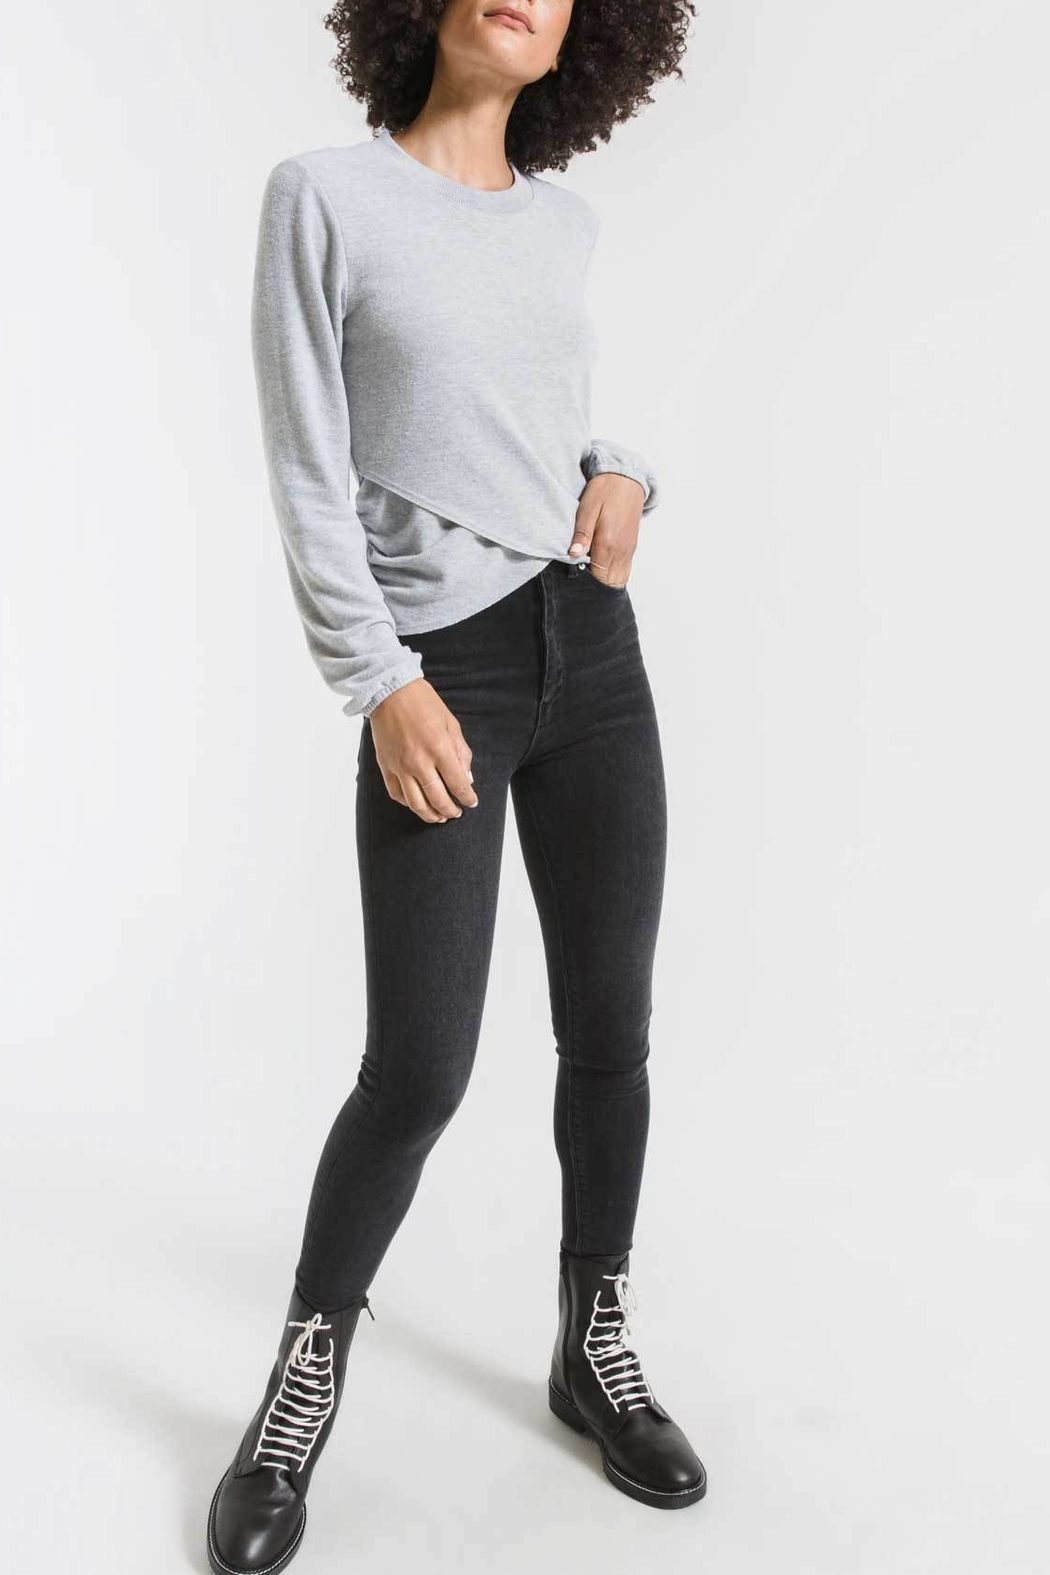 z supply Soft Spun Ruched Long Sleeve Top - Front Cropped Image